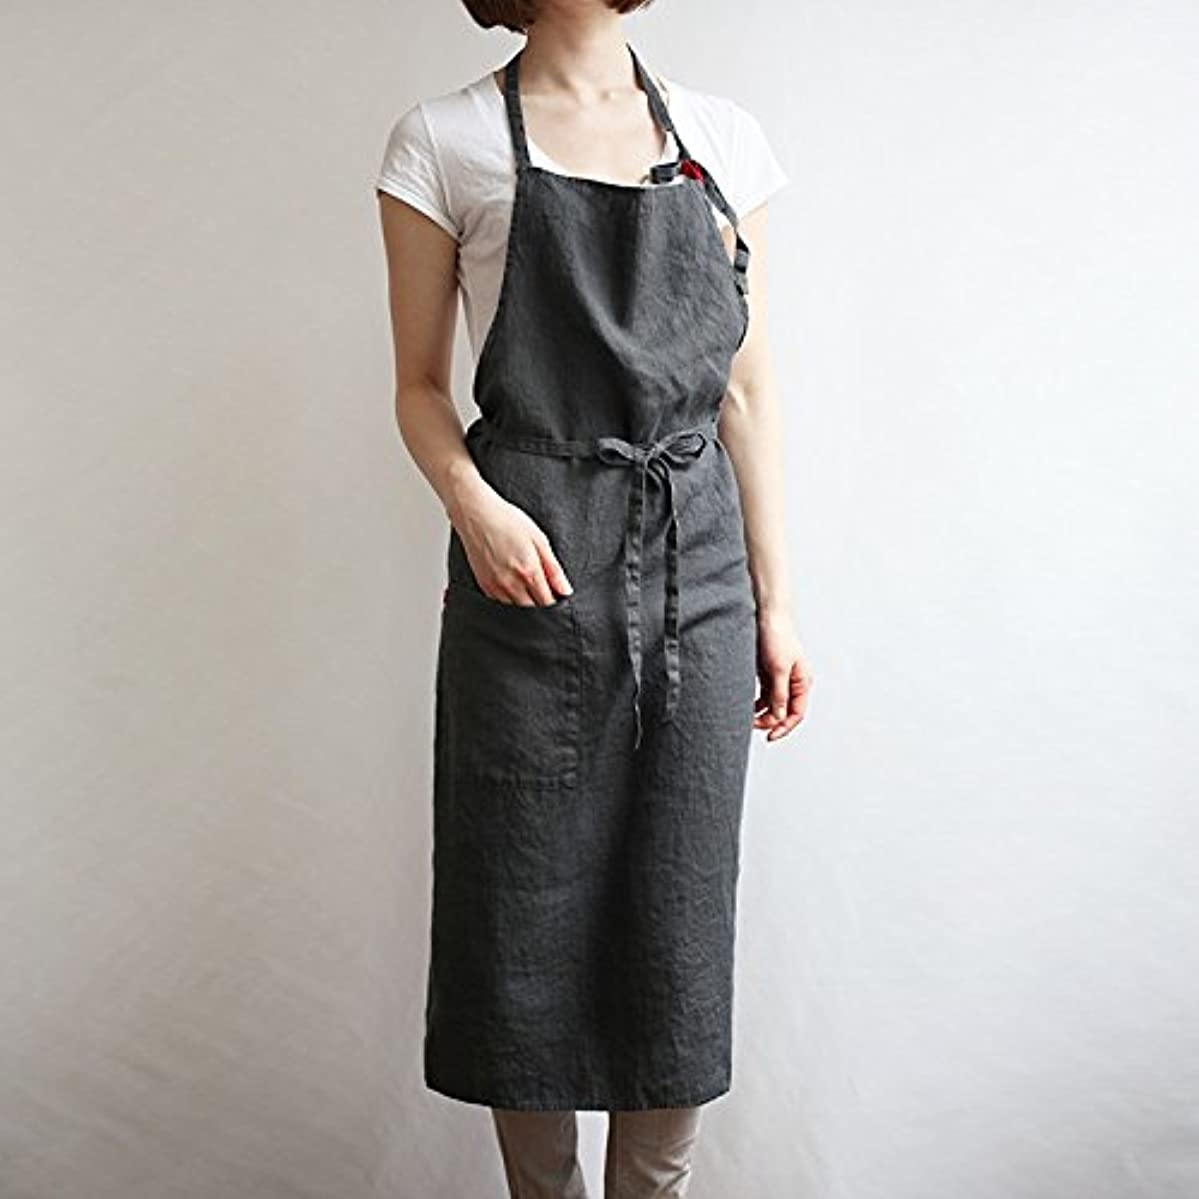 Linen apron 4 color, Unisex adjustable easy care house simple long apron Grey